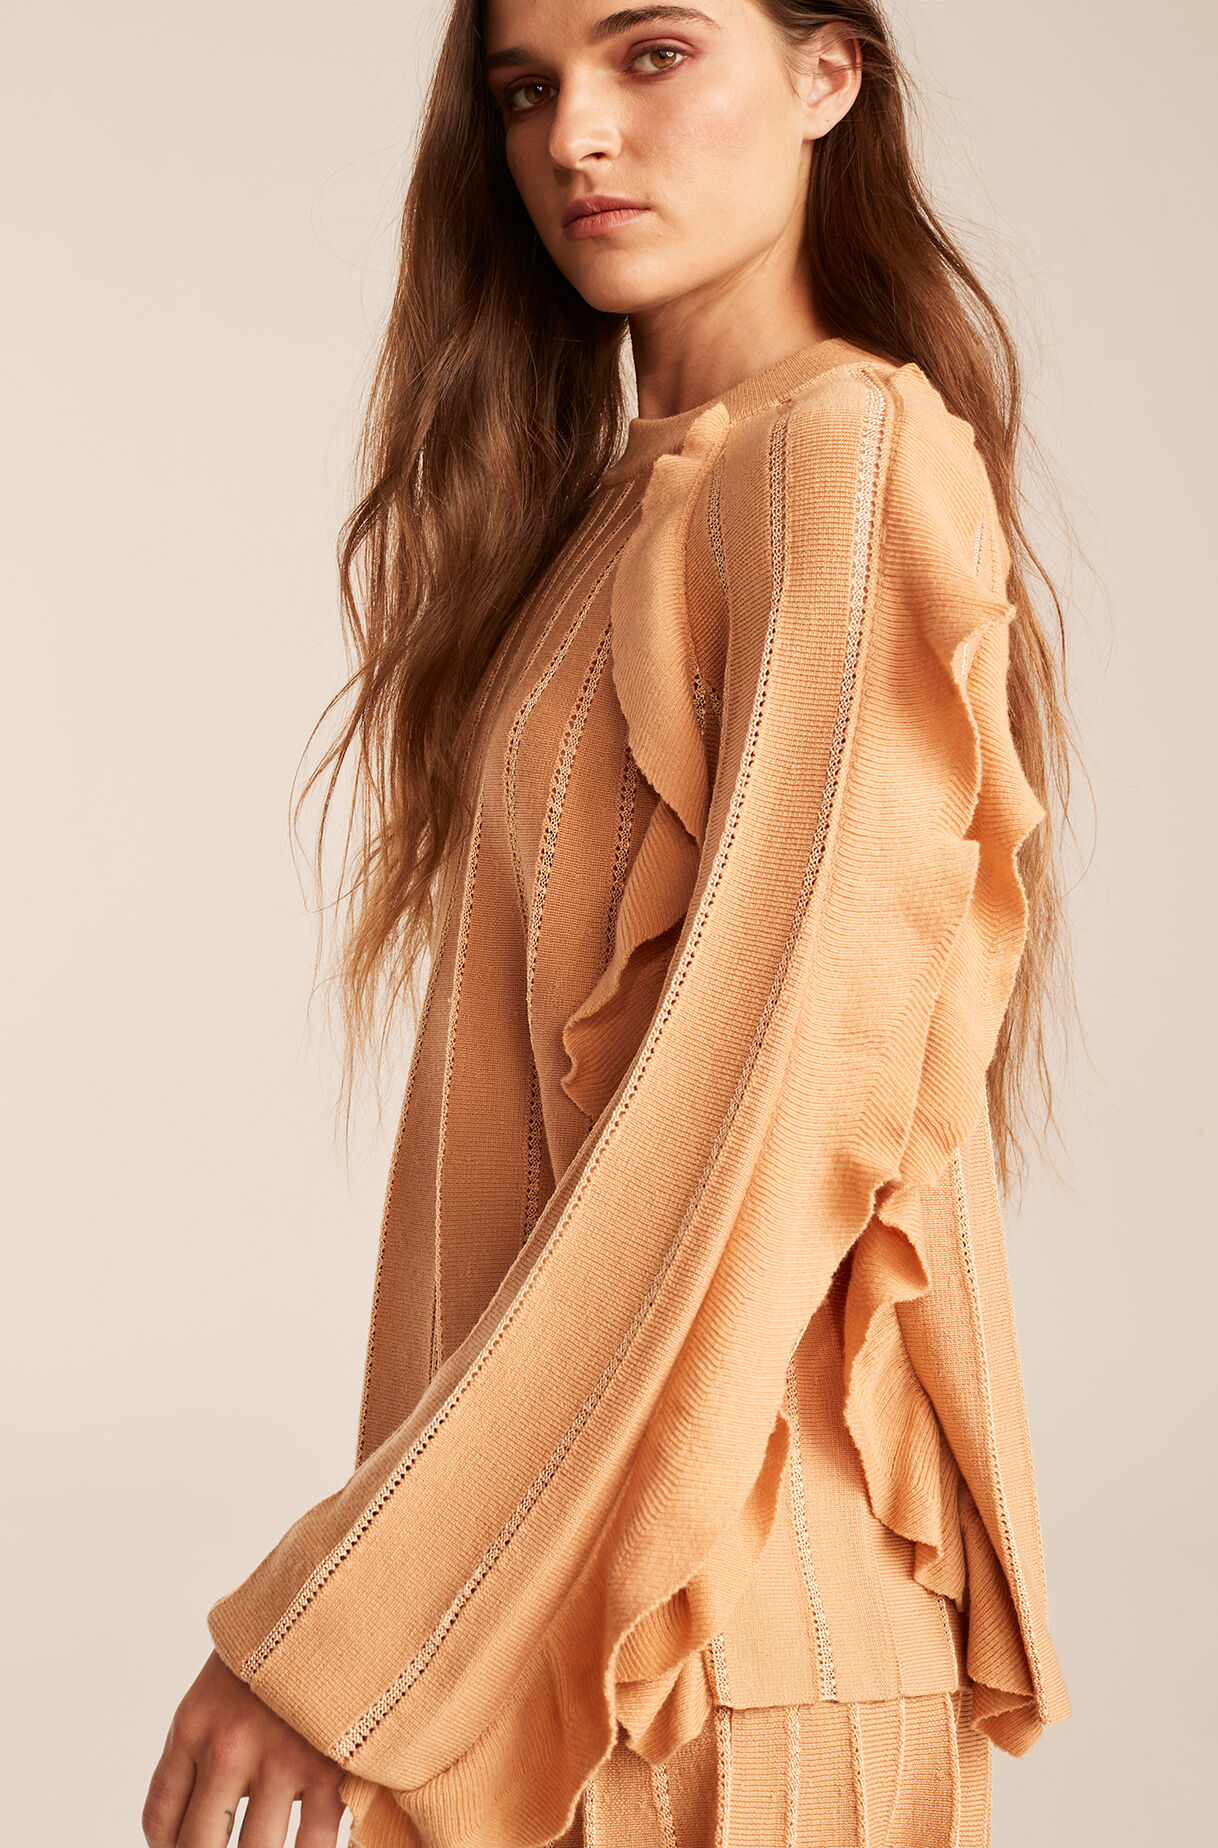 Pleated Stitched Sweater With Ruffles-Sunkiss